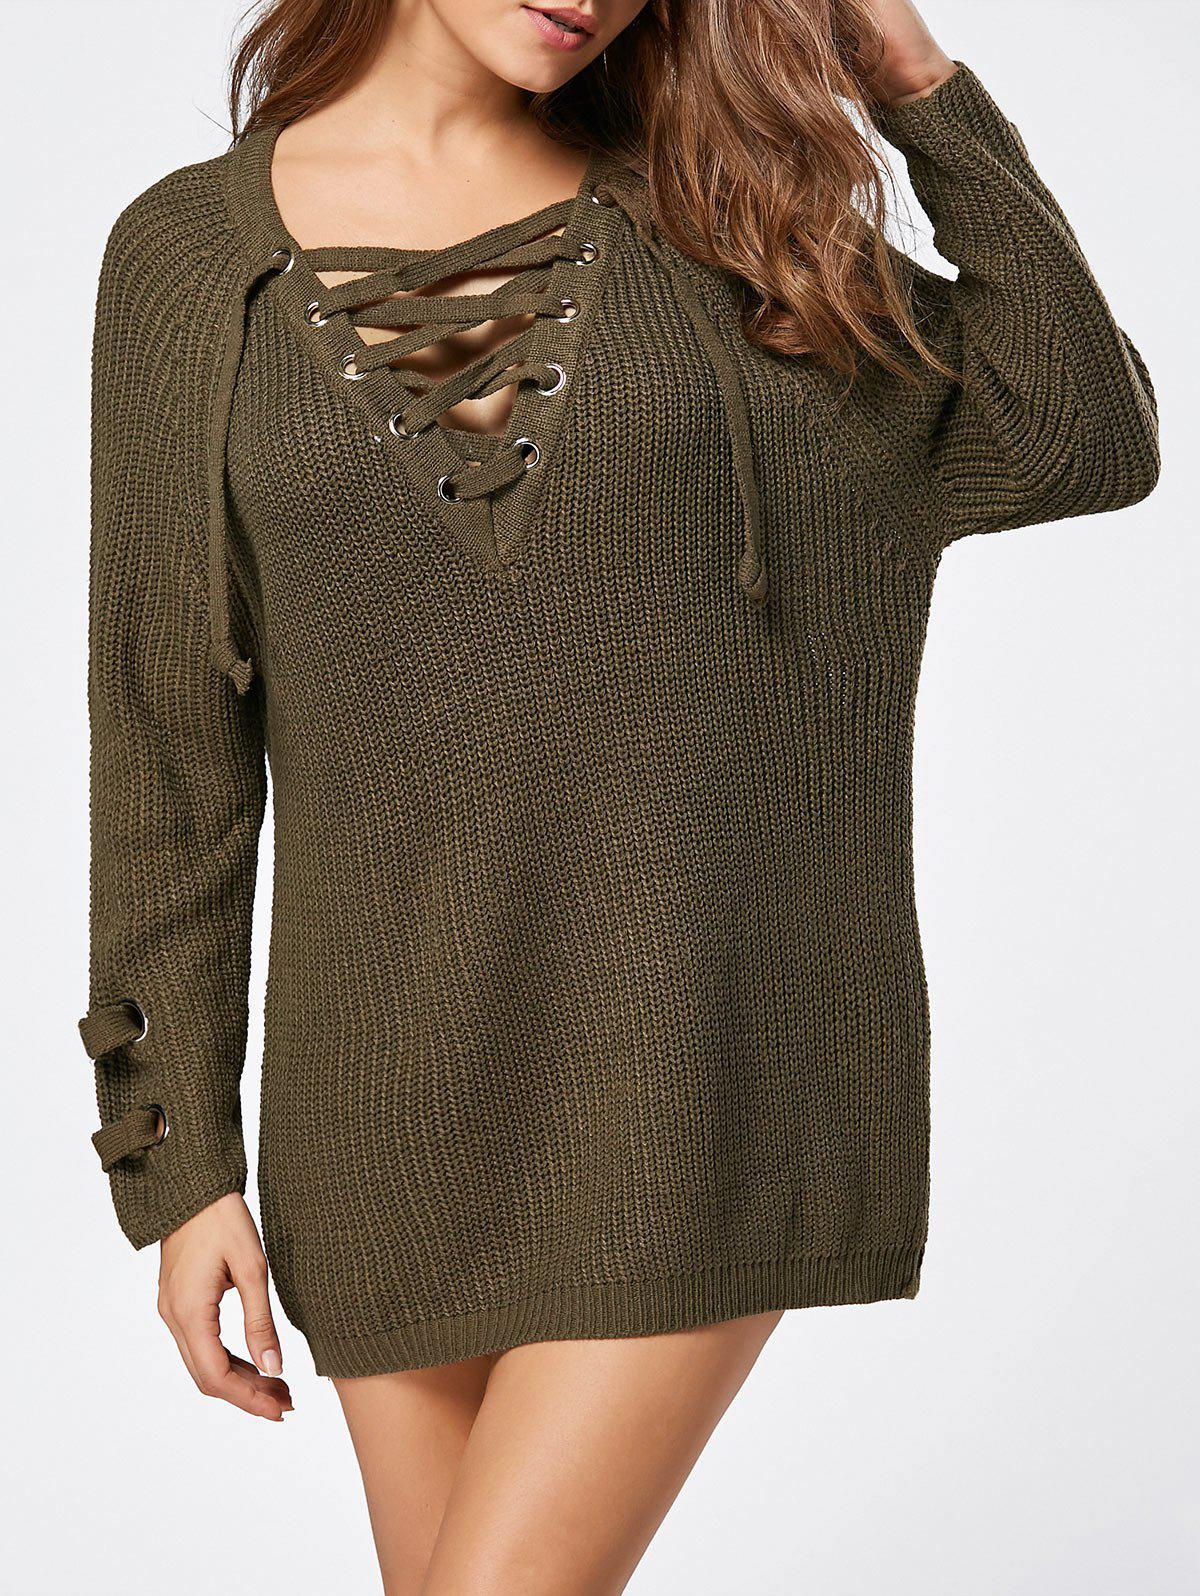 Lace Up Raglan Sleeve Ribbed Trim Sweater - LAWN ONE SIZE